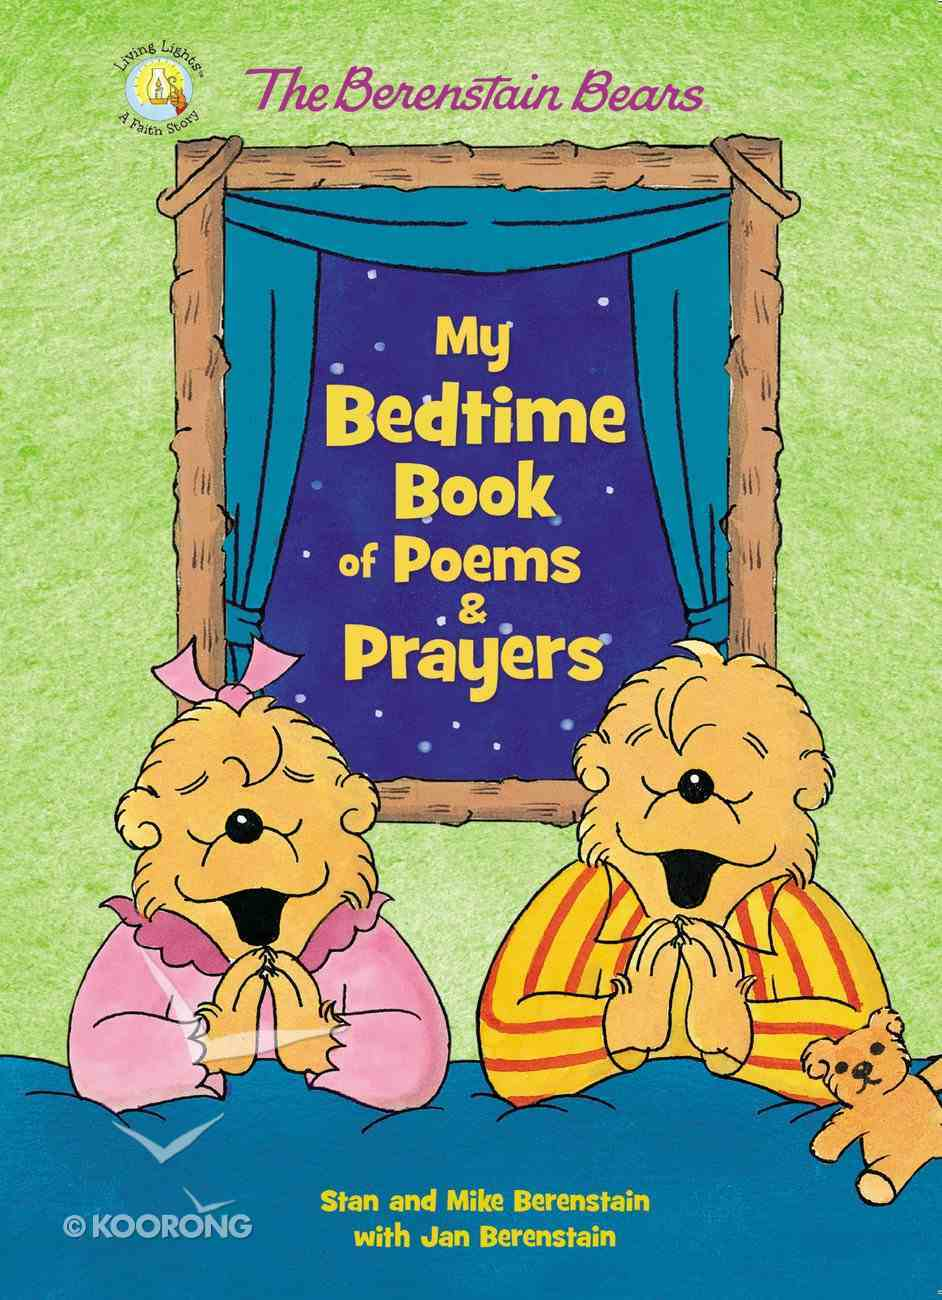 The Berenstain Bears My Bedtime Book of Poems and Prayers (The Berenstain Bears Series) Board Book